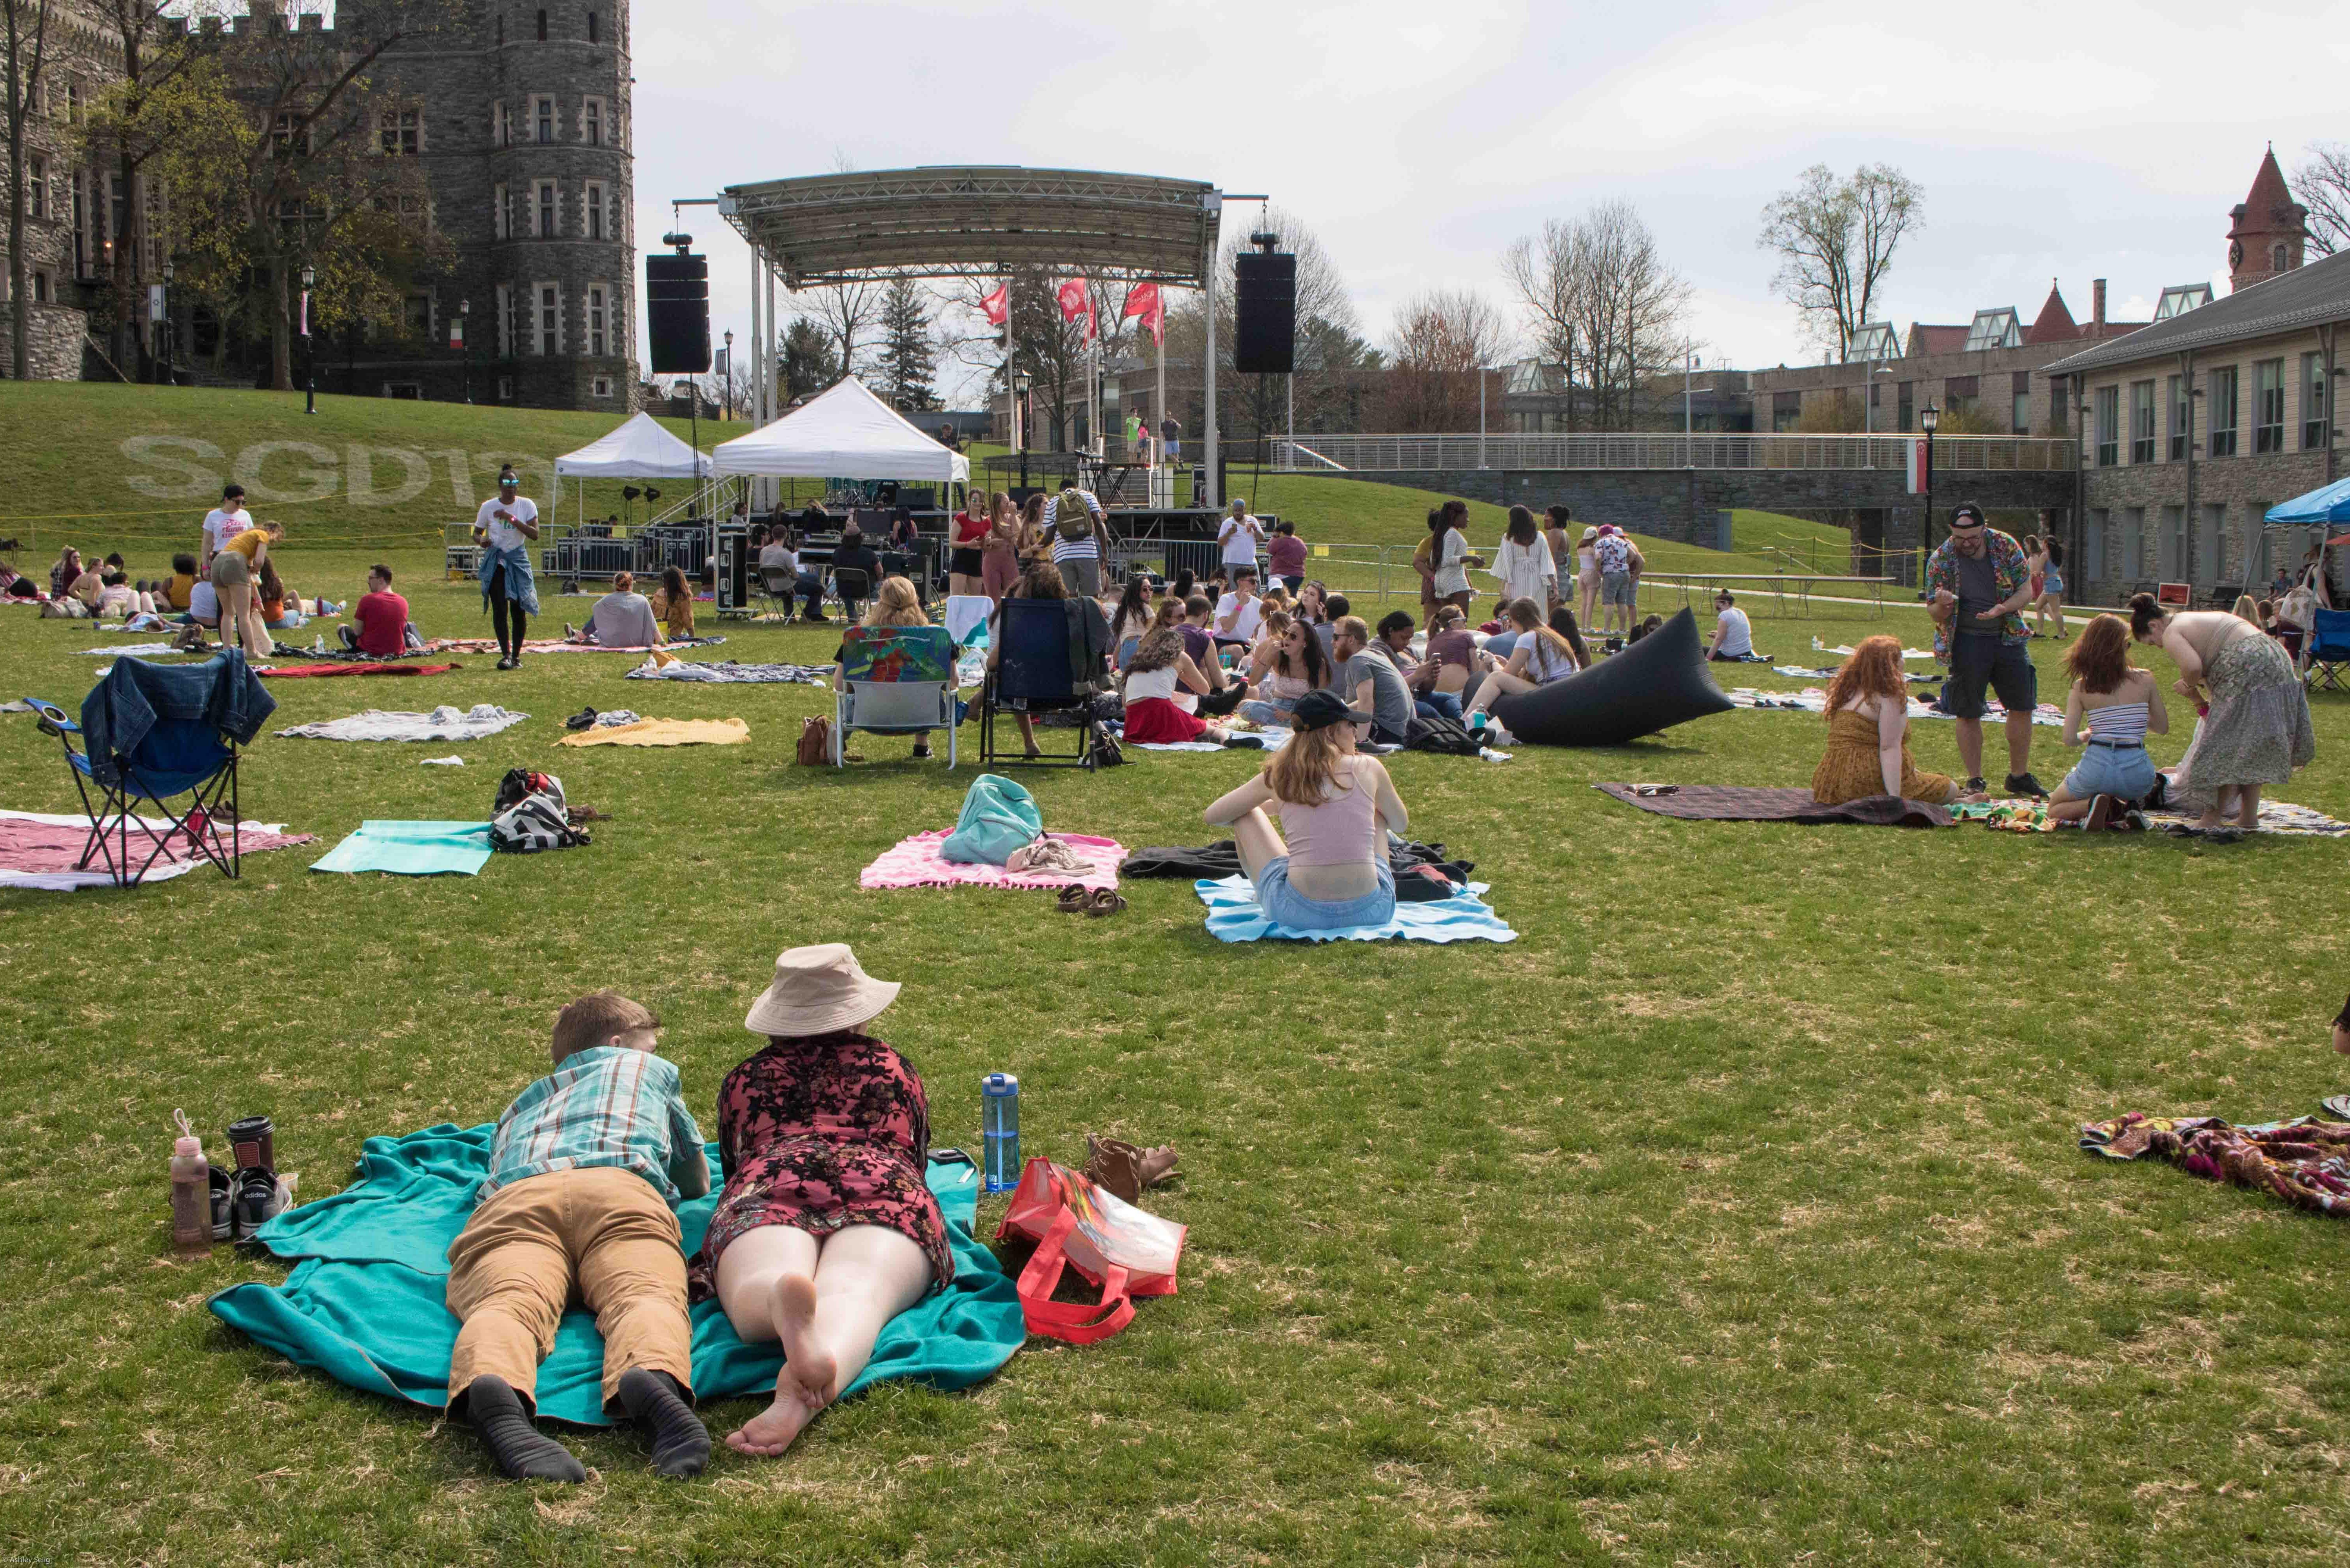 Students lay on blankets on the green while watching a performance at Woodstock.